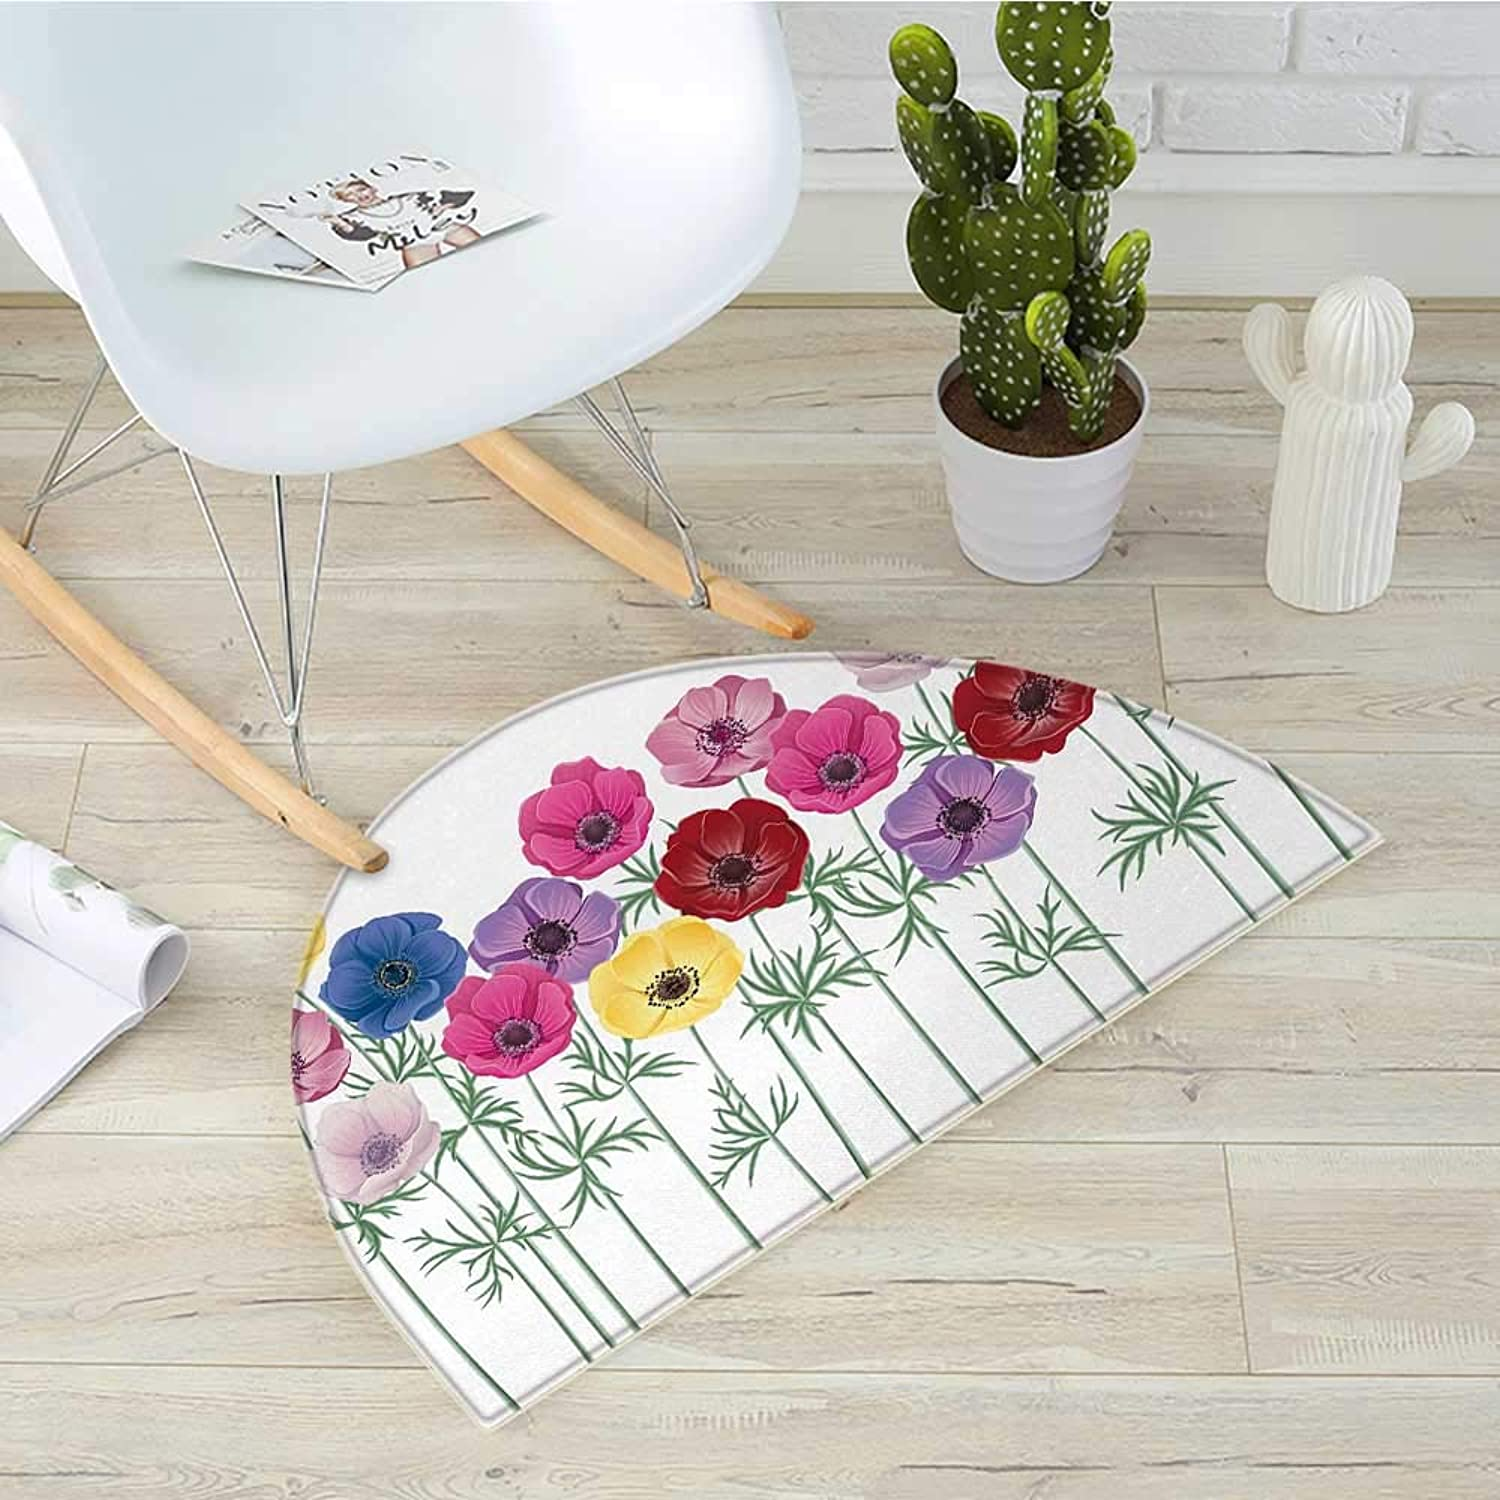 Anemone Flower Half Round Door mats Group of Graphic colorful Flowers on Branches Blooming Field in Summer Theme Bathroom Mat H 31.5  xD 47.2  Multicolor